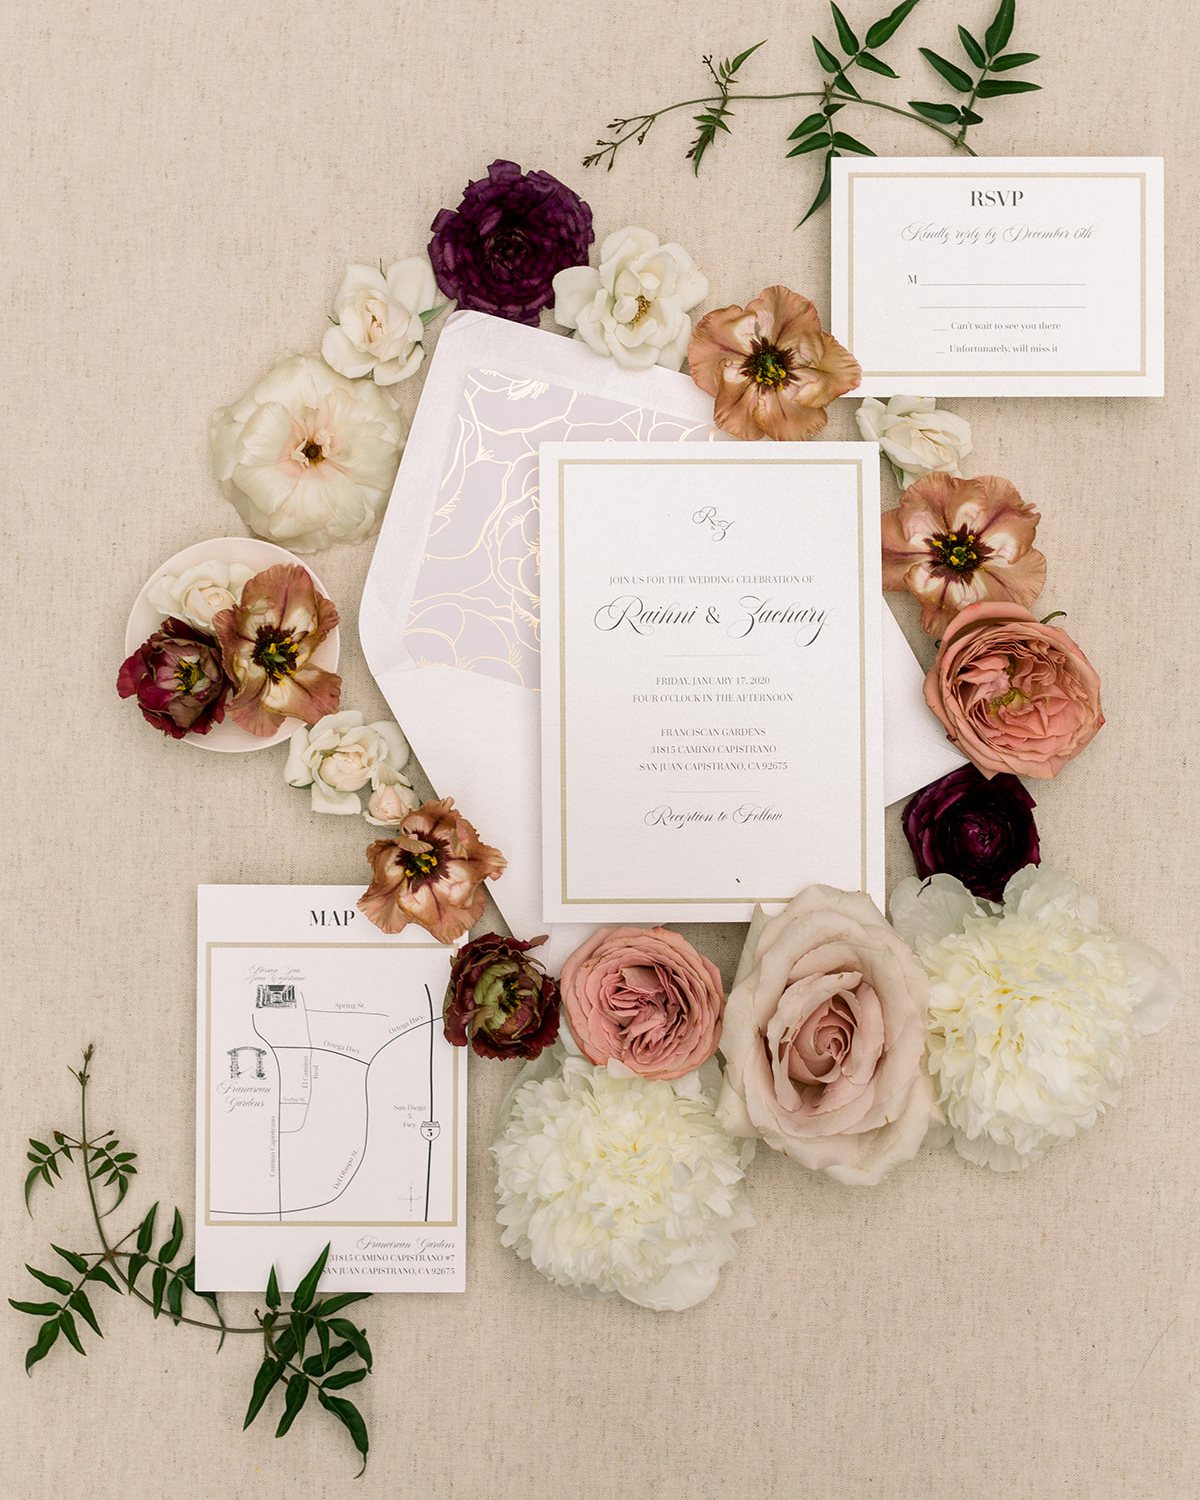 mauve and berry tones elegant wedding invitations